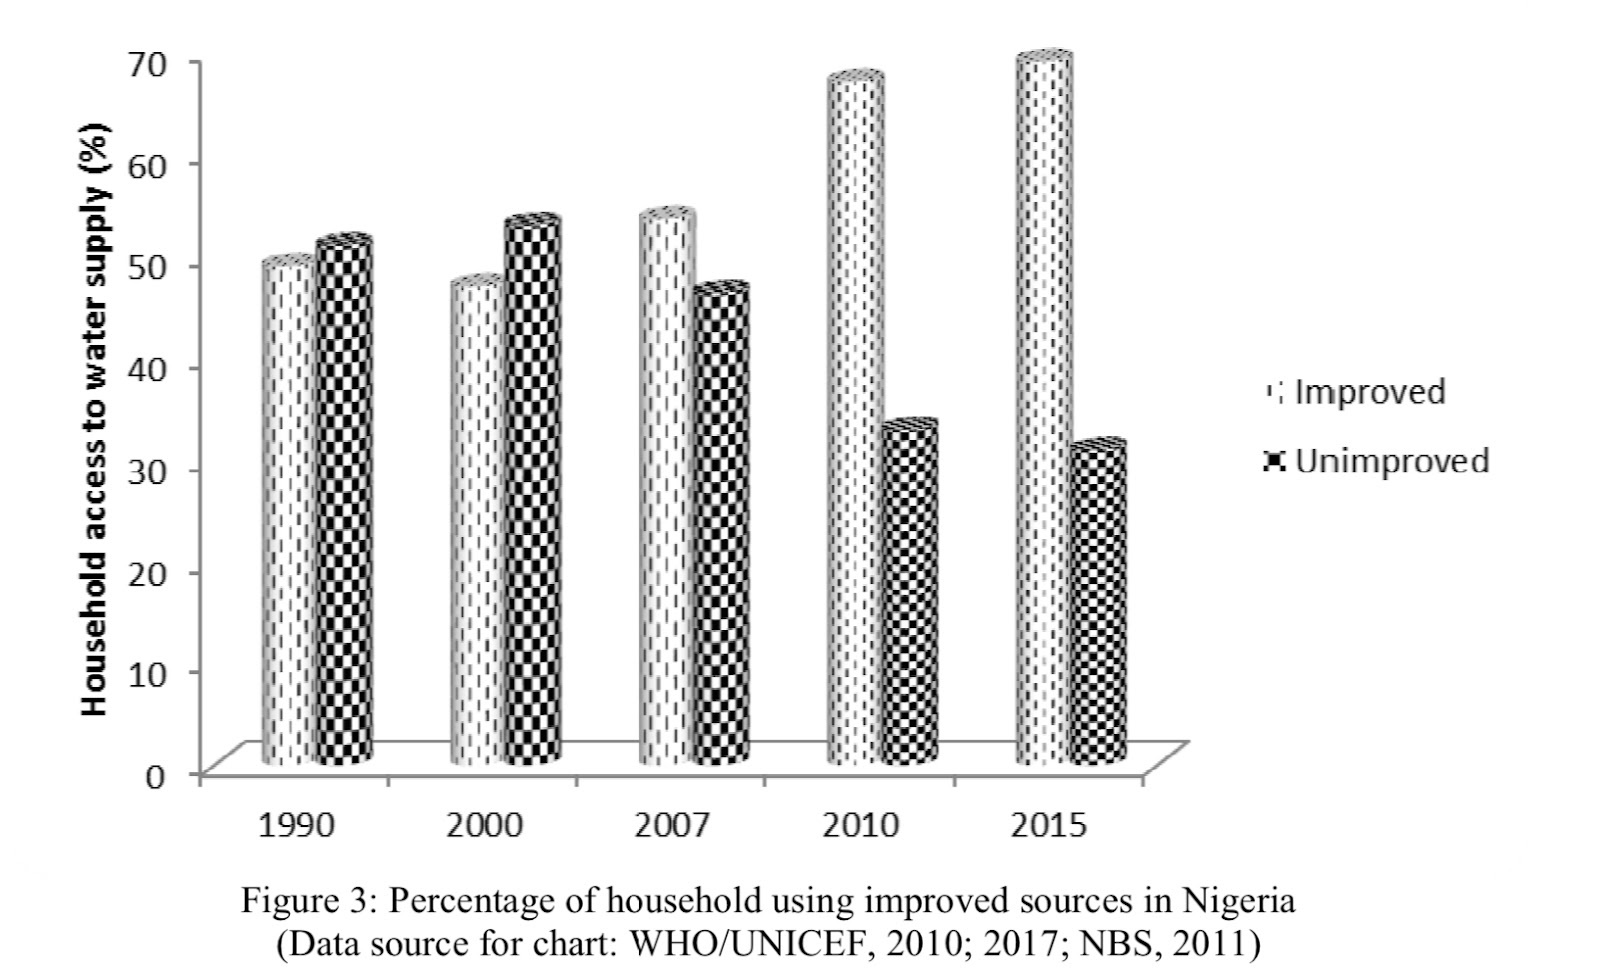 improved tap water sources in Nigeria.